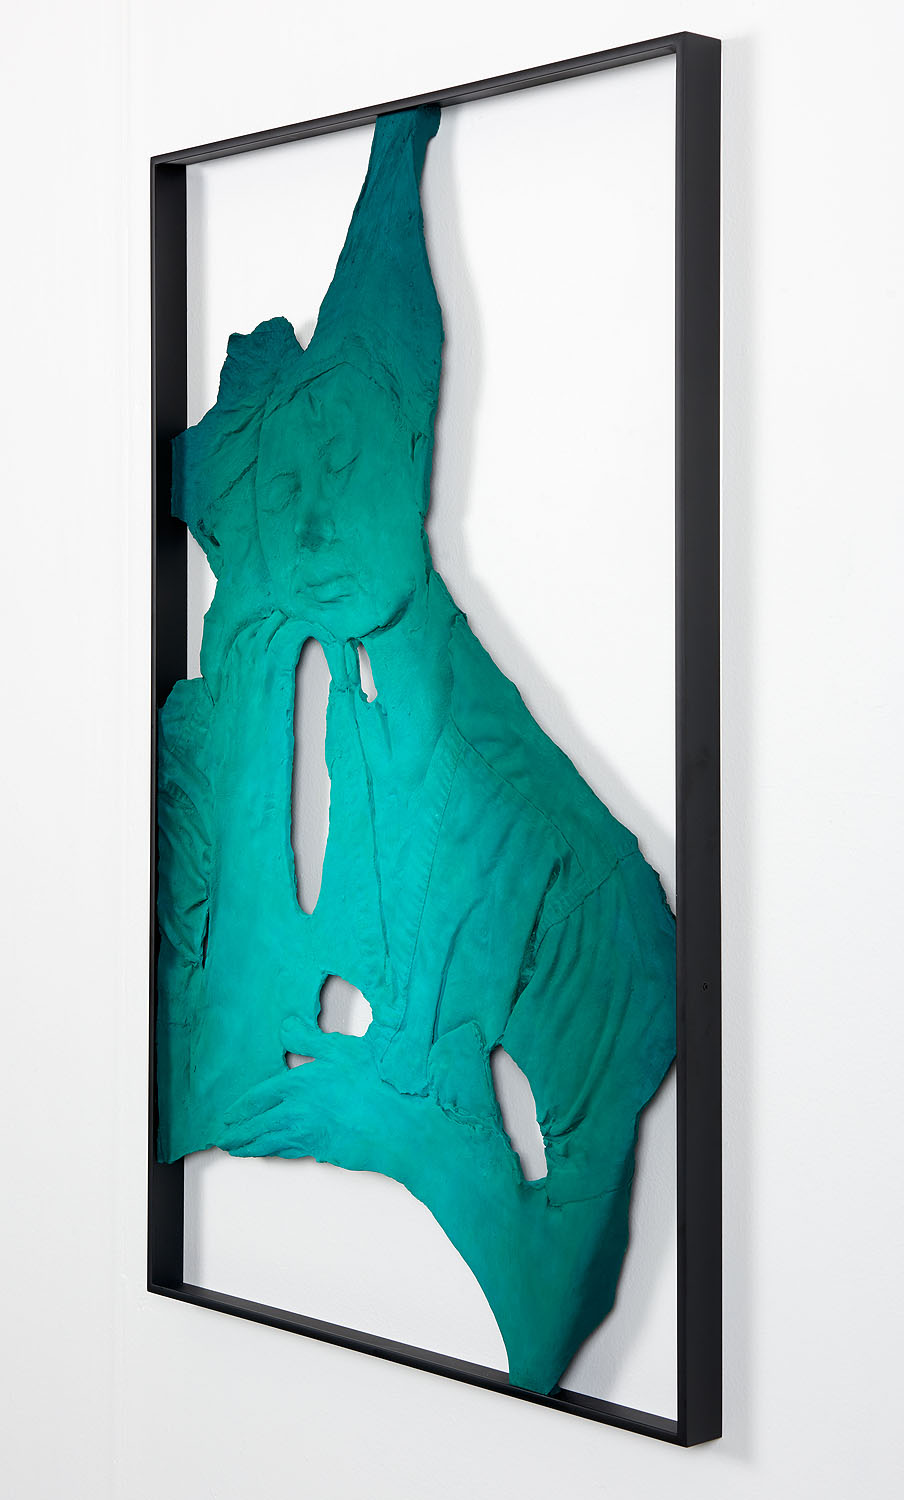 Lucy Kim   Plastic Surgeon (Dr. Melissa Doft) #1 , 2017  Oil, acrylic, Flashe, spray enamel, urethane resin, epoxy, fibreglass, powder-coated aluminum frame  32 x 23.5 x 3 inches